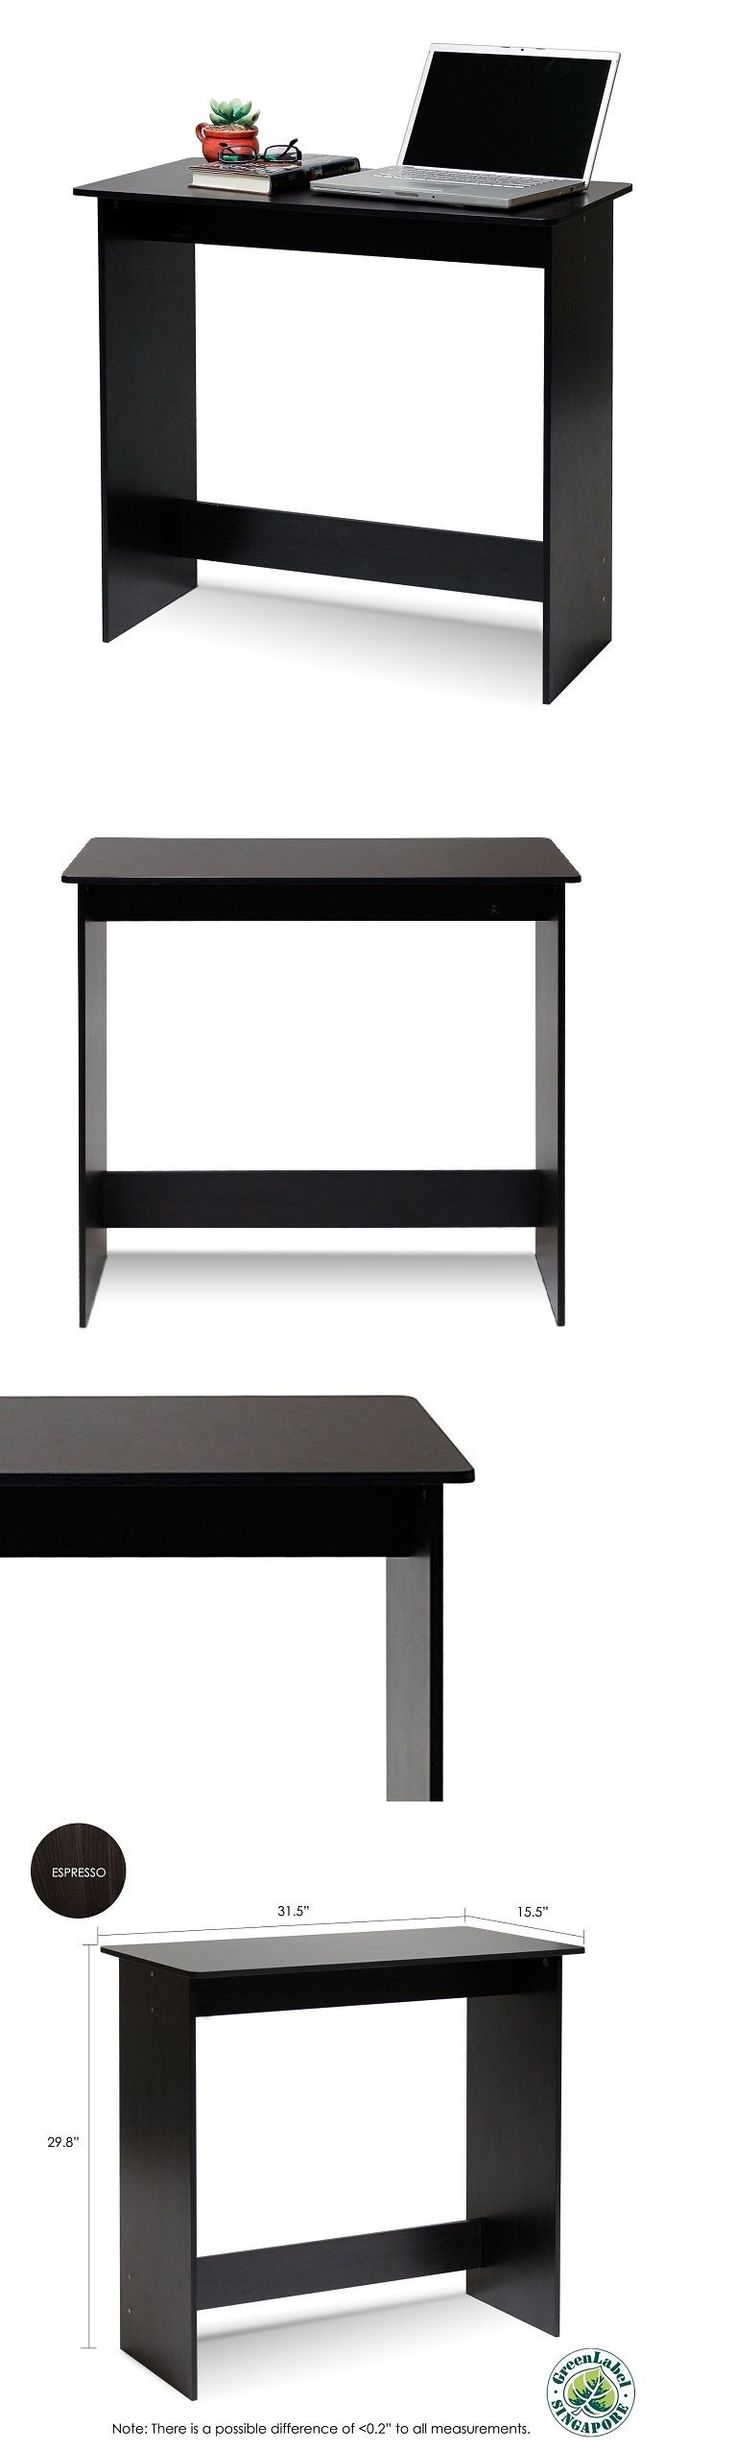 Desks and Home Office Furniture 88057: Student Desk Writing Table Laptop Computer Desk For Small Spaces Study Table -> BUY IT NOW ONLY: $49.32 on eBay!